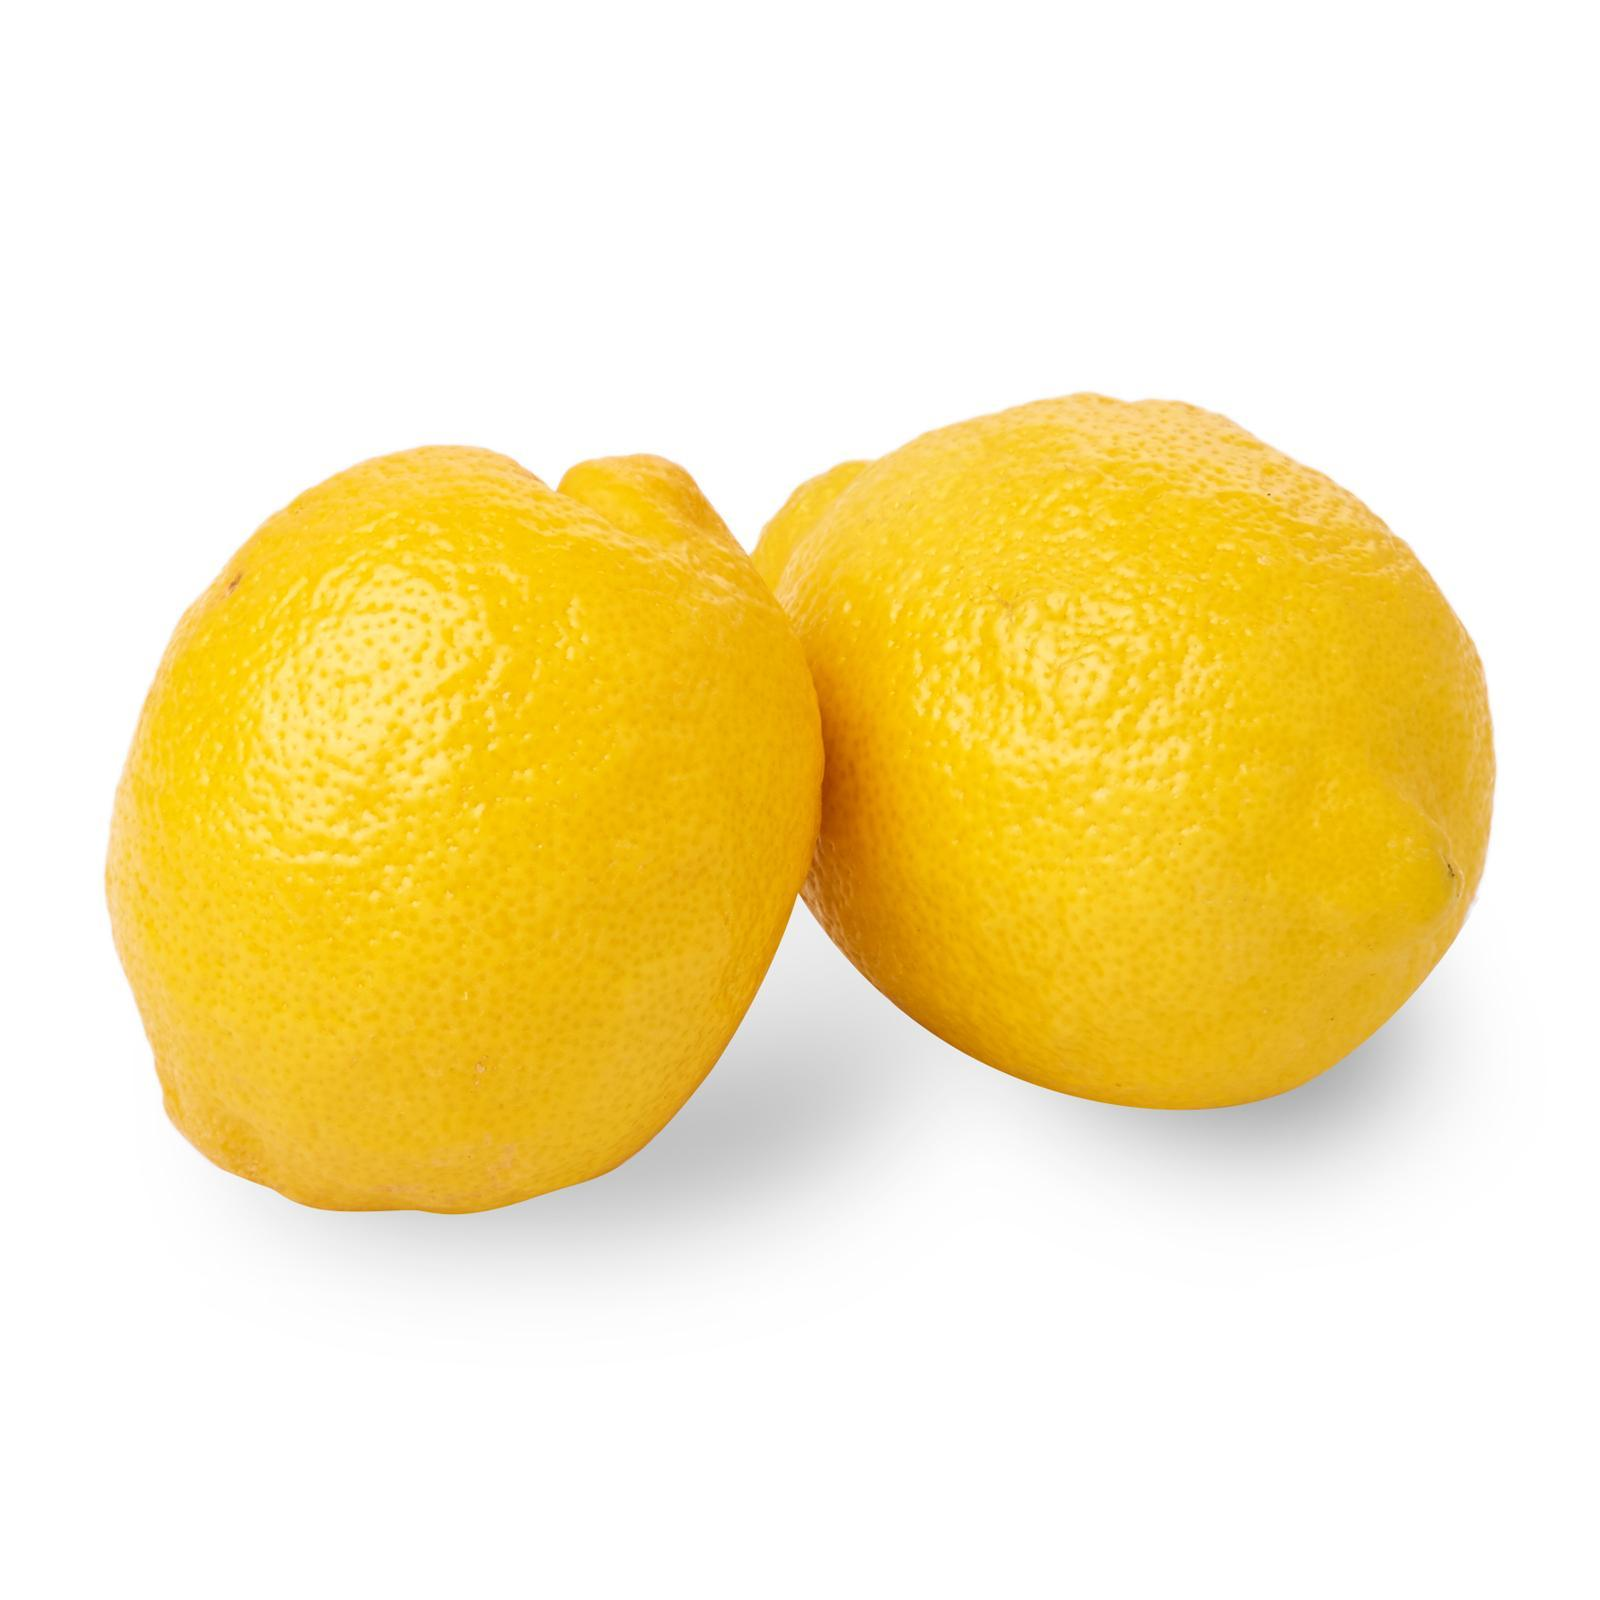 Citrus Jumbo Yellow Lemons By Redmart.